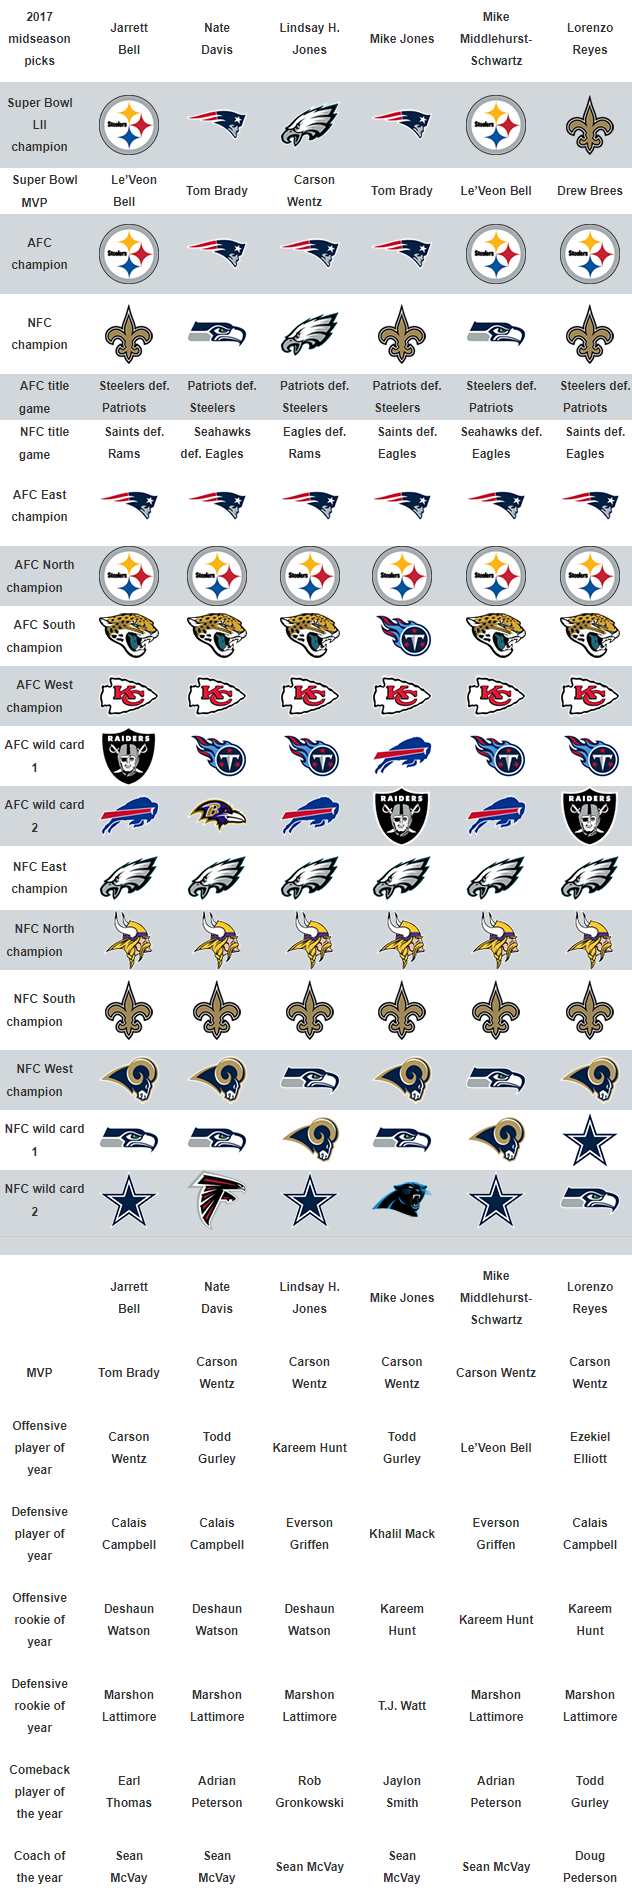 USA TODAY Sports' midseason NFL predictions for Super Bowl 52, MVP, more